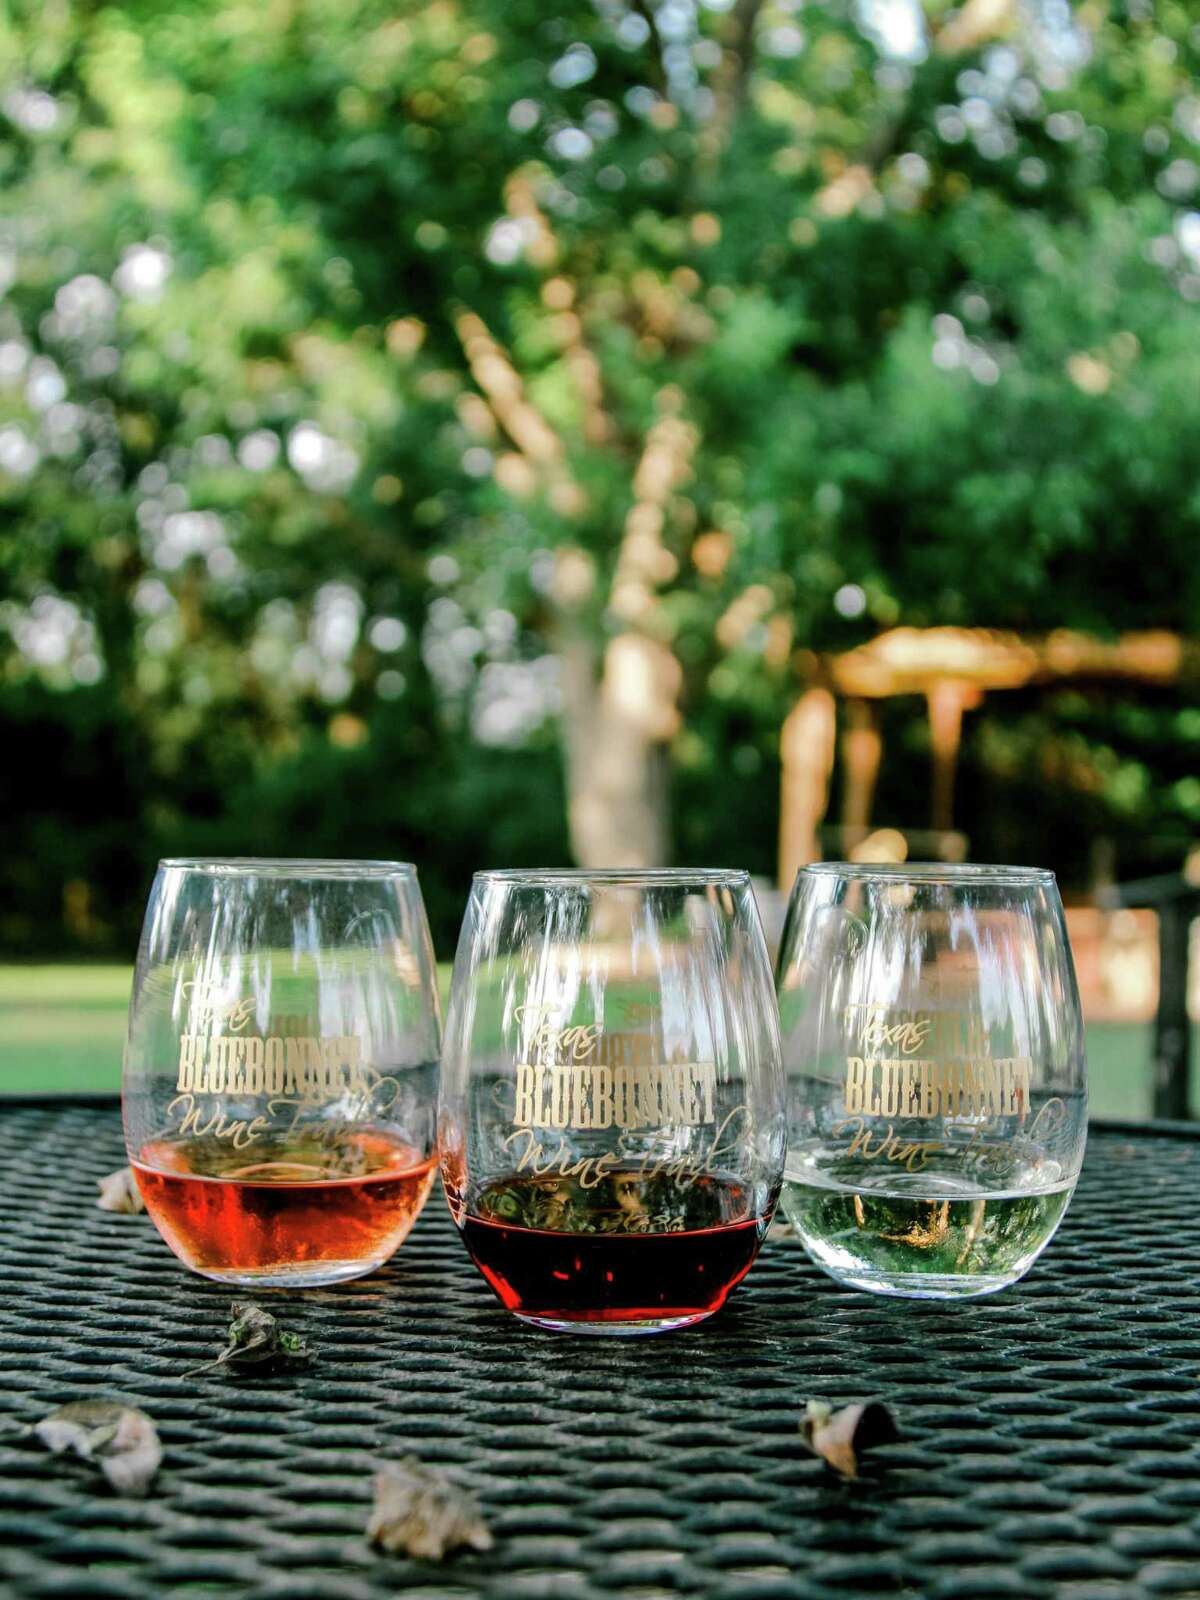 It's fall and a time to celebrate Texas wines on the Texas Bluebonnet Wine Trail in the hill country northwest of Houston.